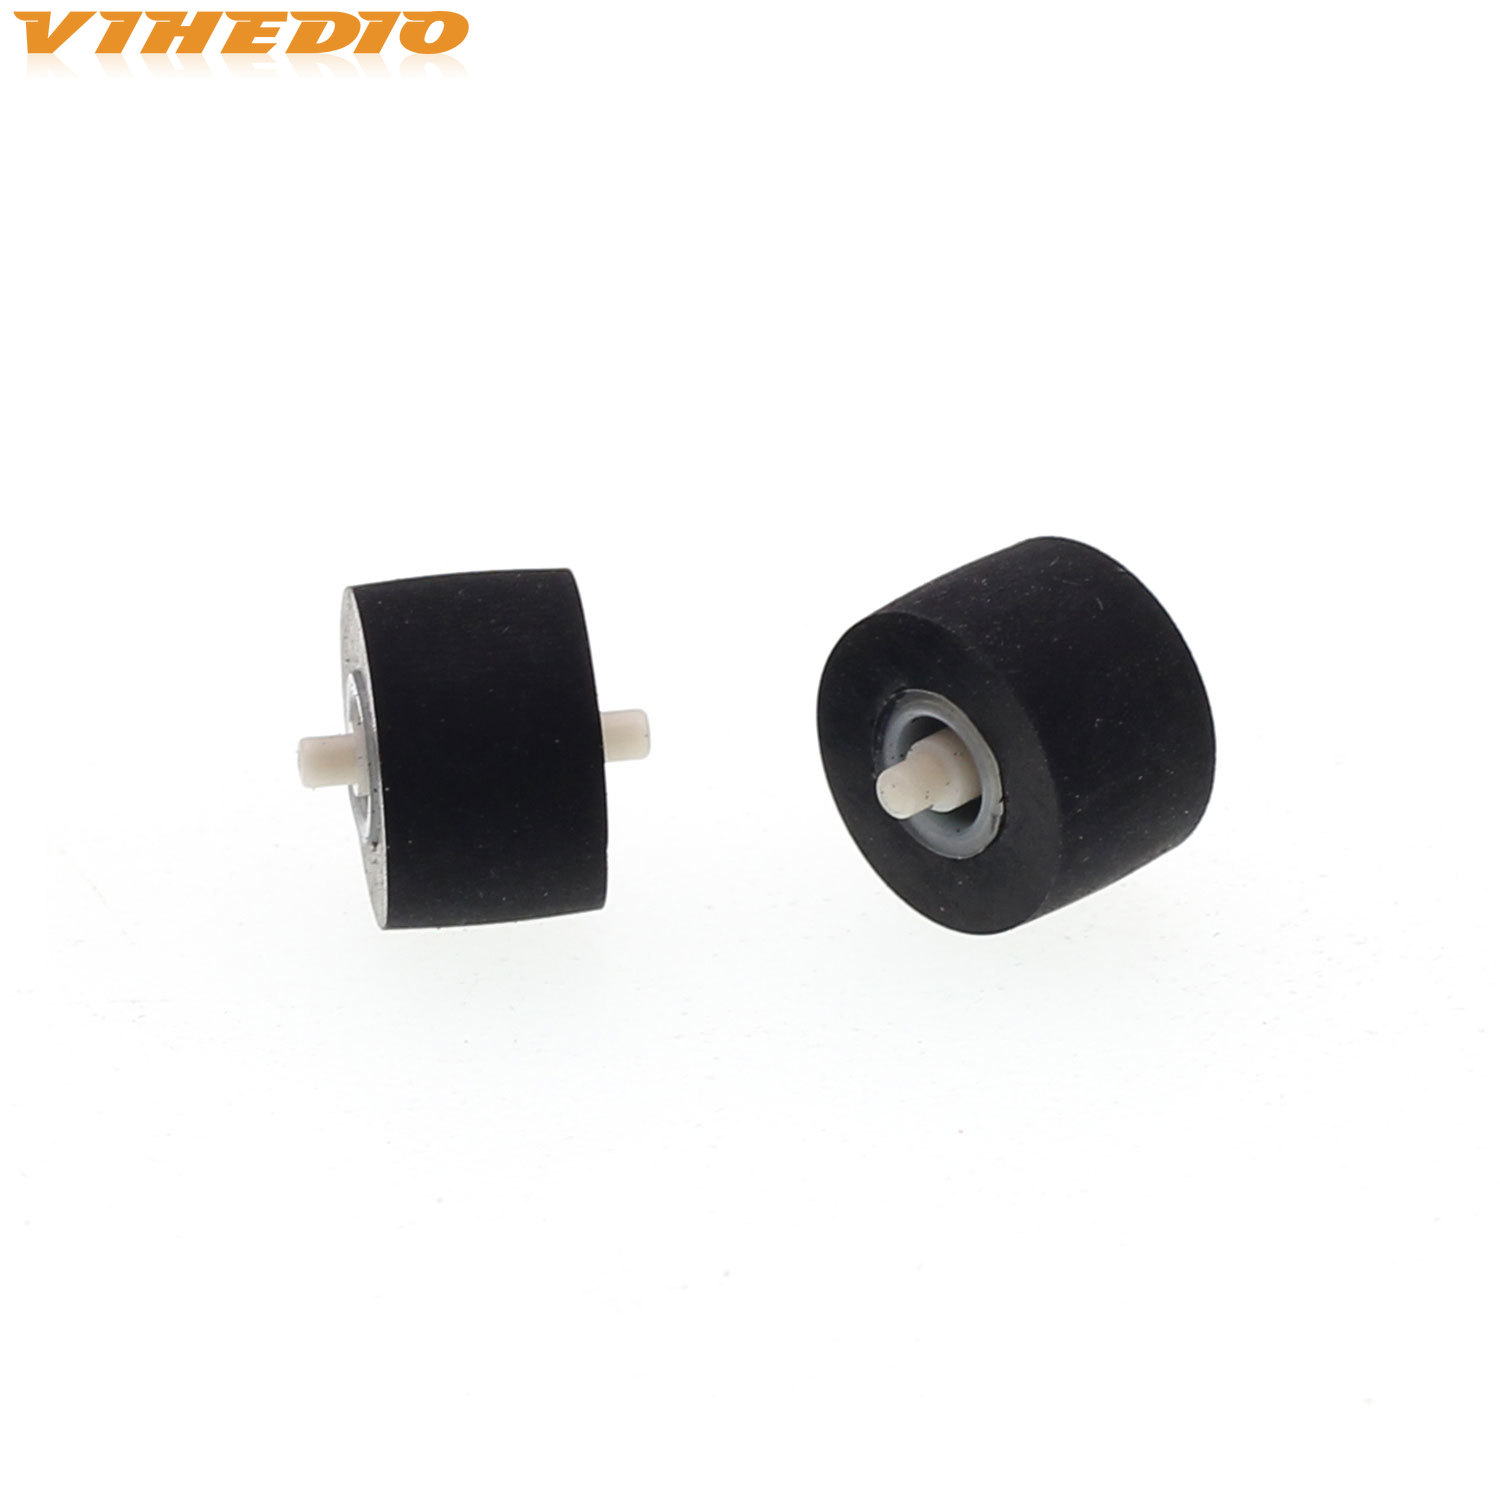 2pcs 10mmx6.5x1.5 Retractor Press Belt Pulley Deck Audio Pressure Recorder Cassette Deck Pinch Roller Tape For Technics TR 575